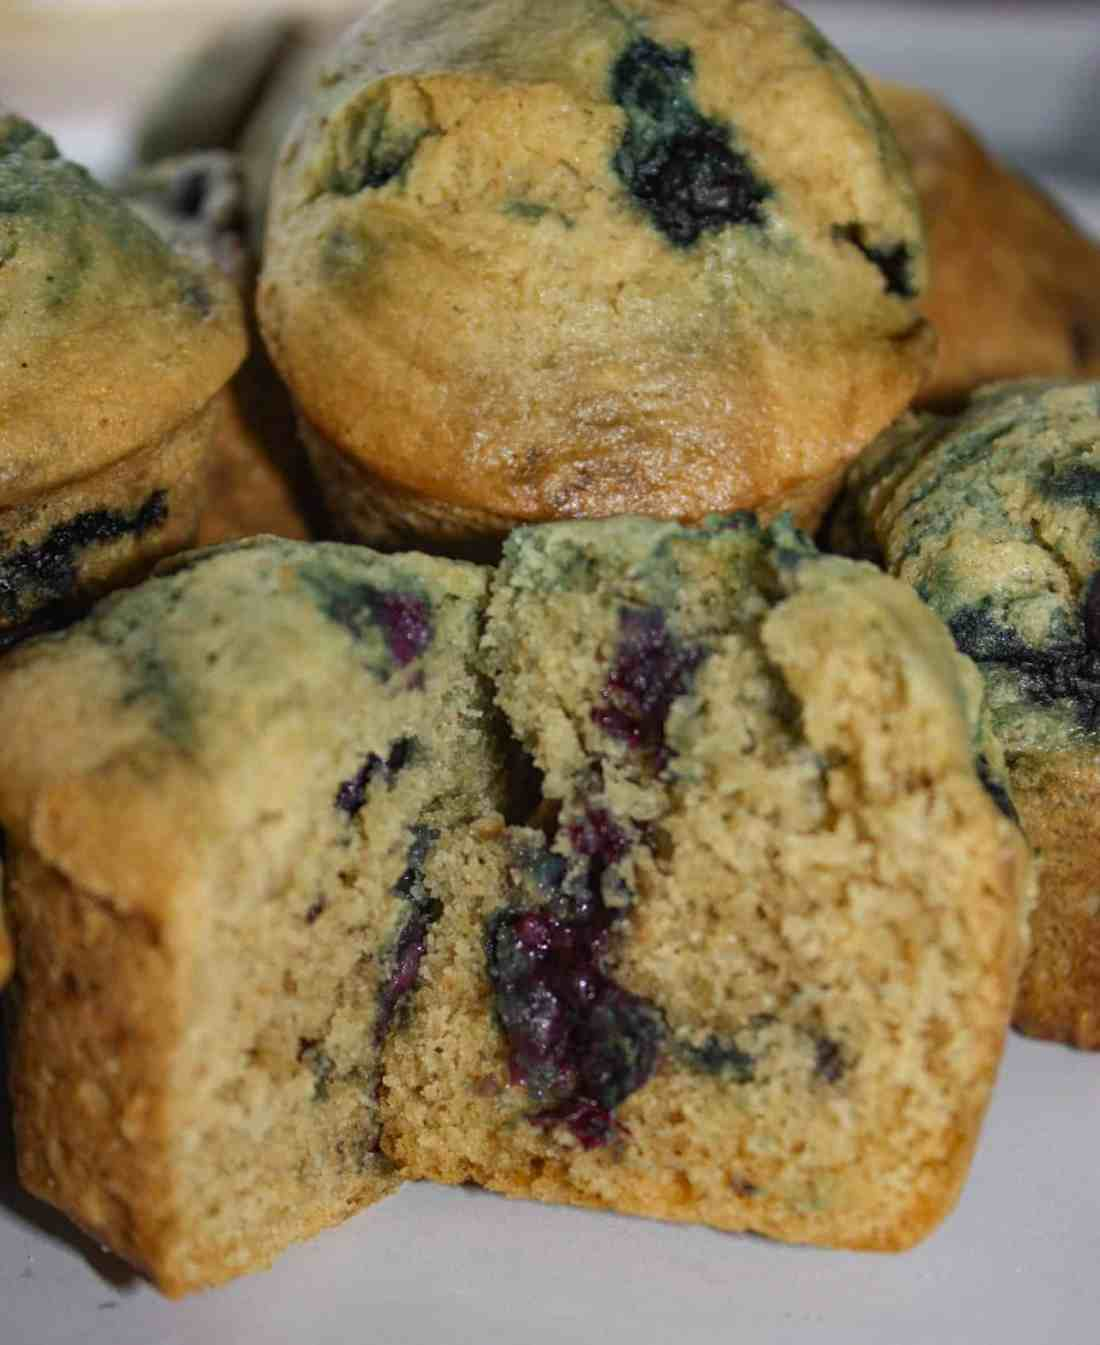 Gluten Free Blueberry Muffins, loaded with wild blueberries, are an appetizing breakfast or snack choice.